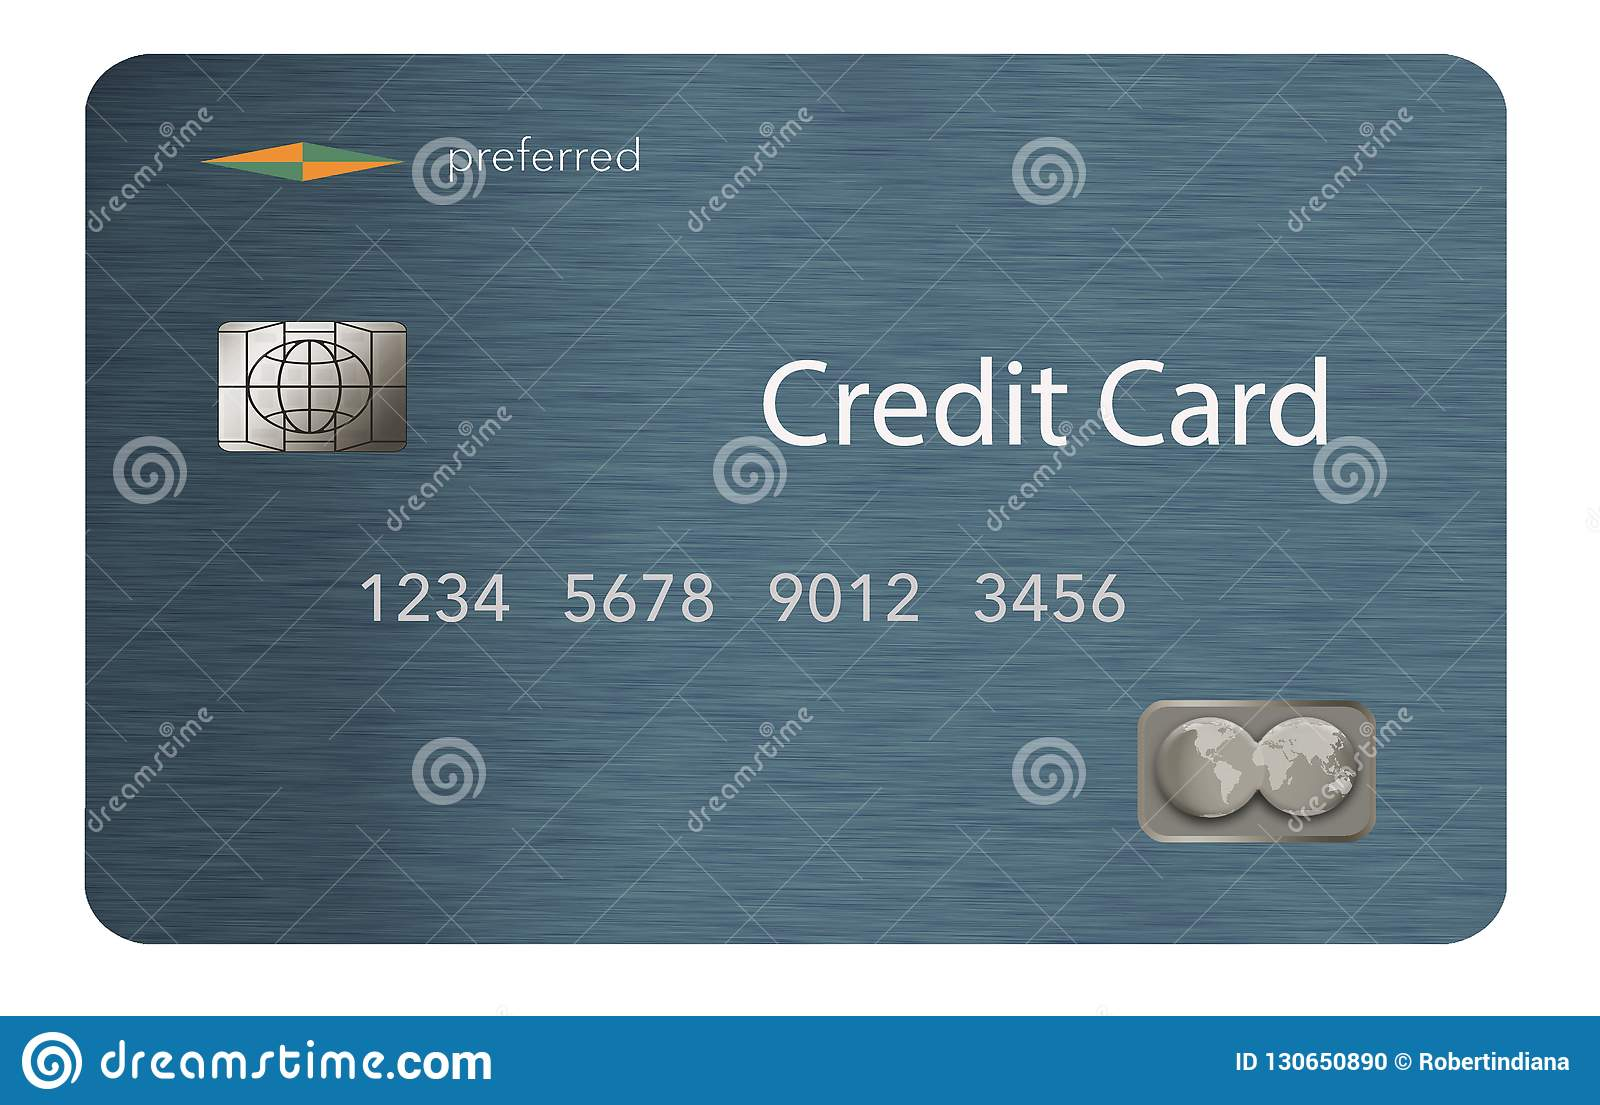 here is a credit card with a contemporary design that is